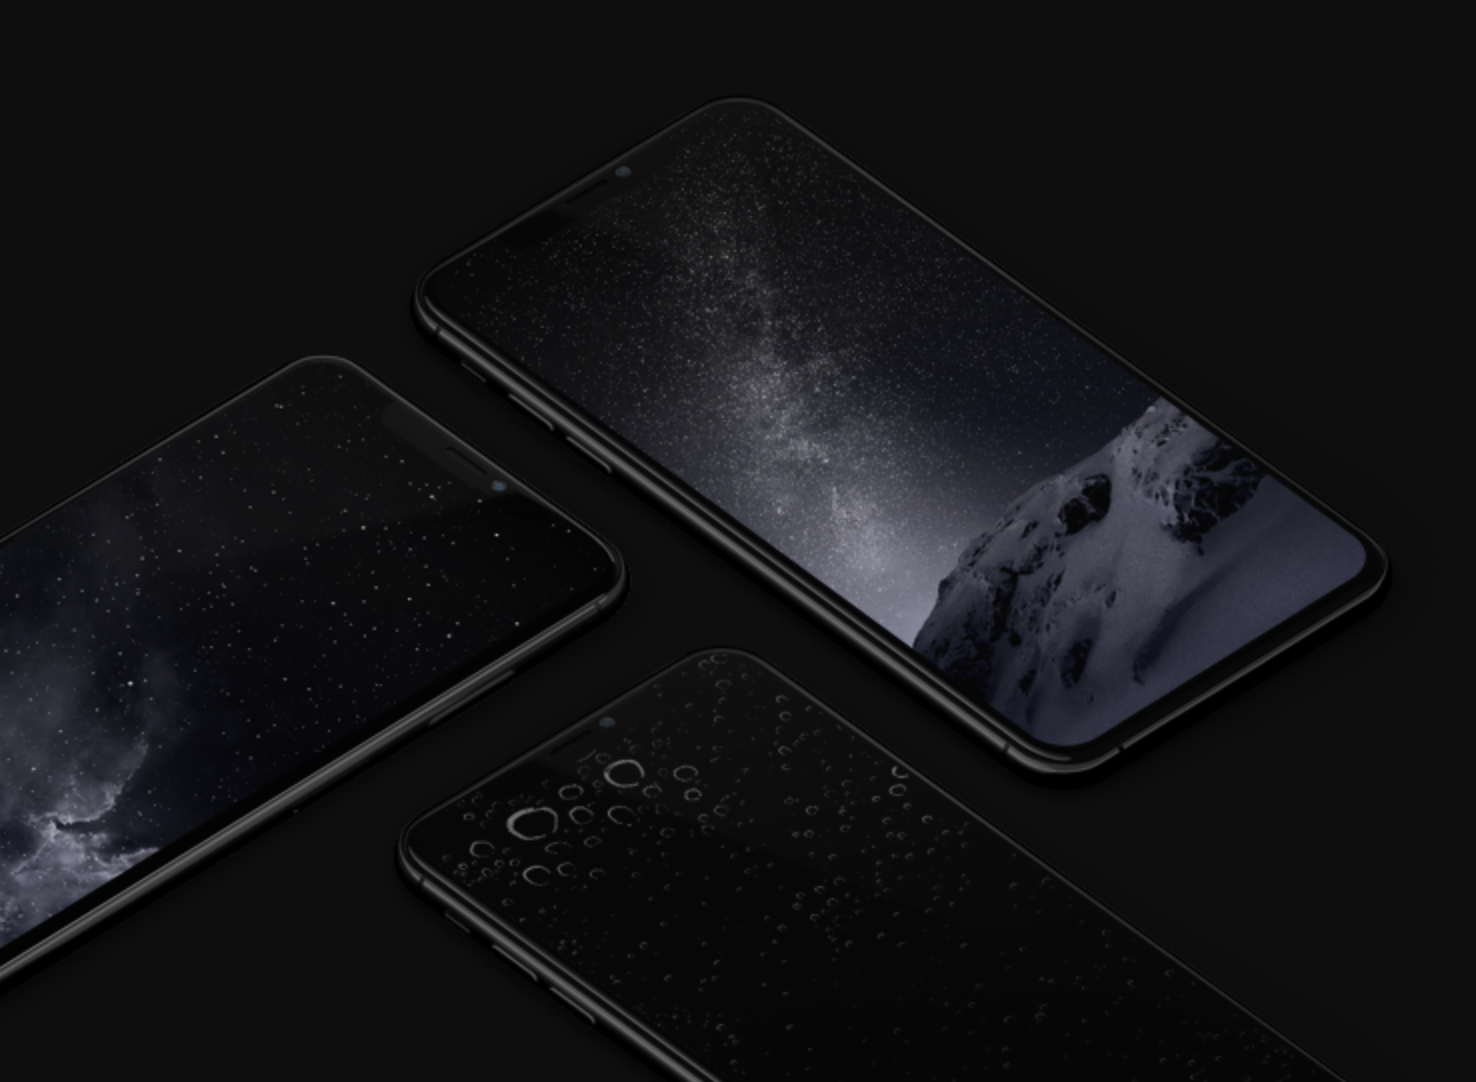 Enhance Your Iphones Dark Mode With These Wallpapers